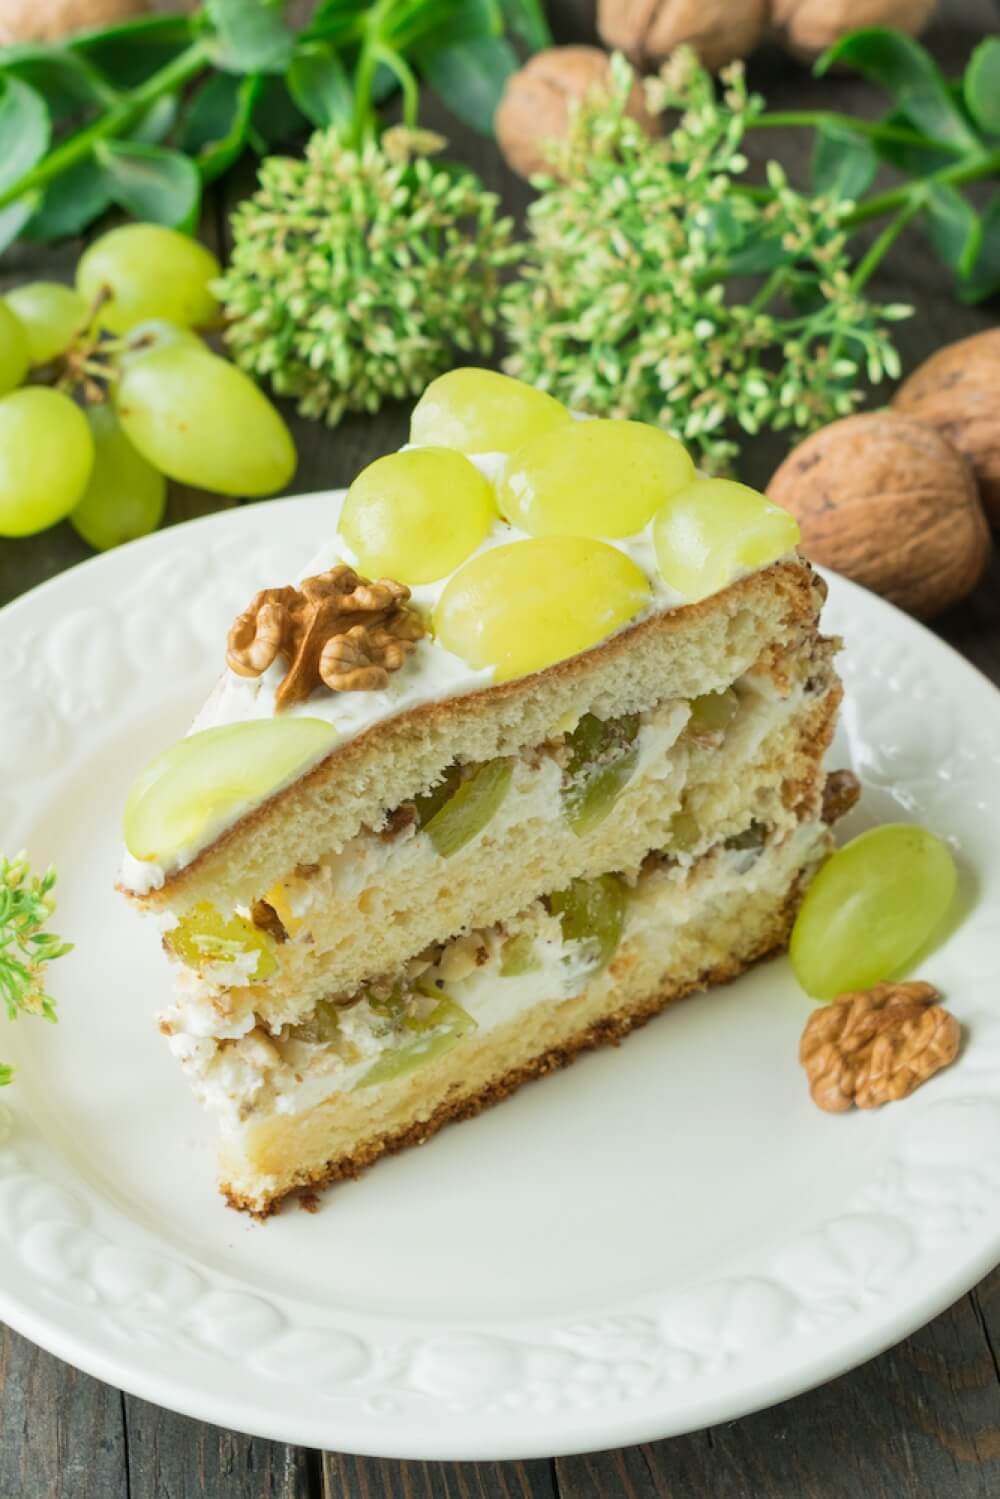 Yogurt Cream Cake with Green Grapes and Walnuts